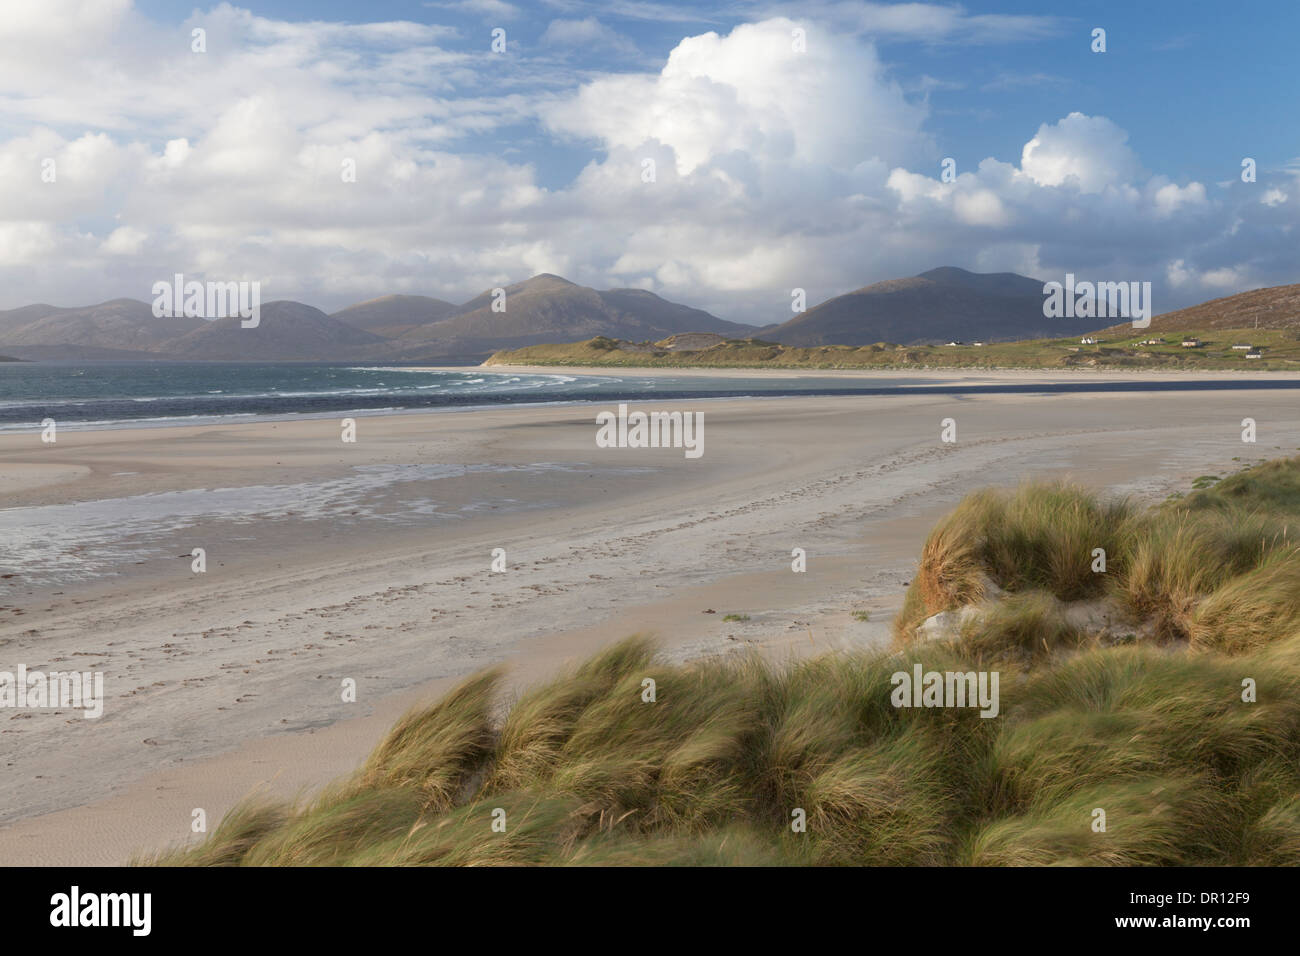 A view of the beach at Seilebost, Isle of Harris, Outer Hebrides, Scotland Stock Photo